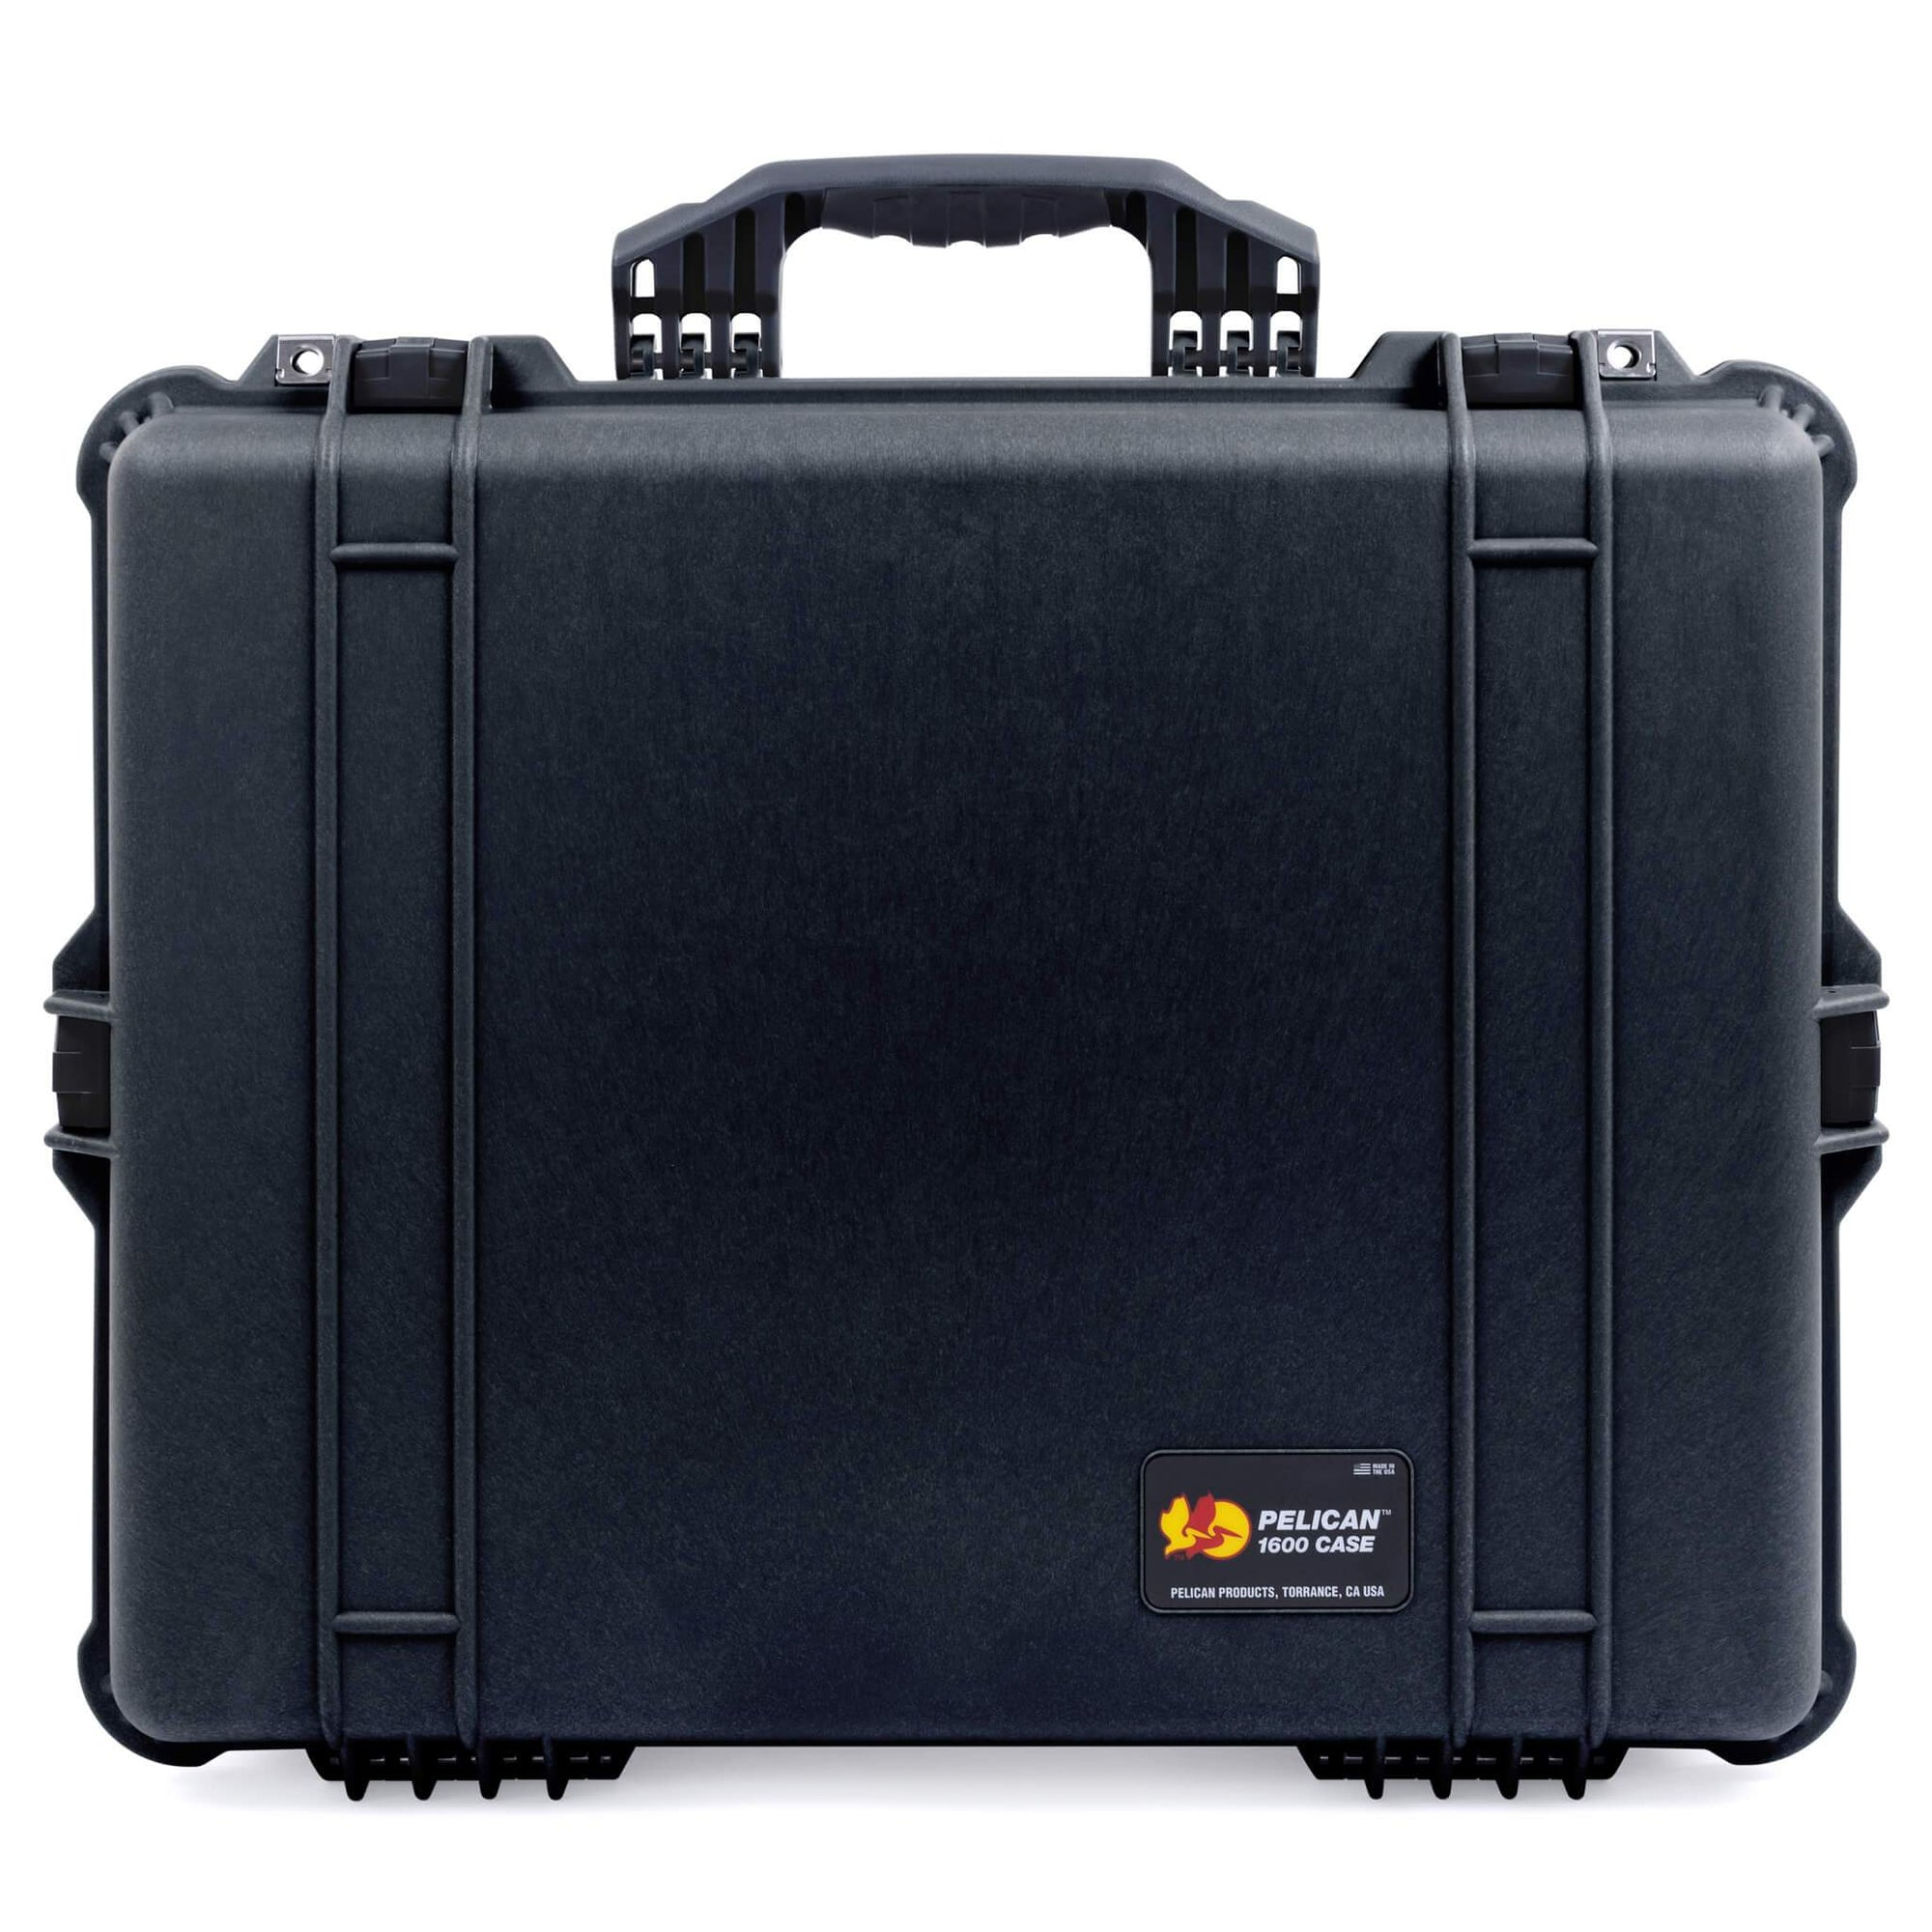 Pelican 1600 Case, Black